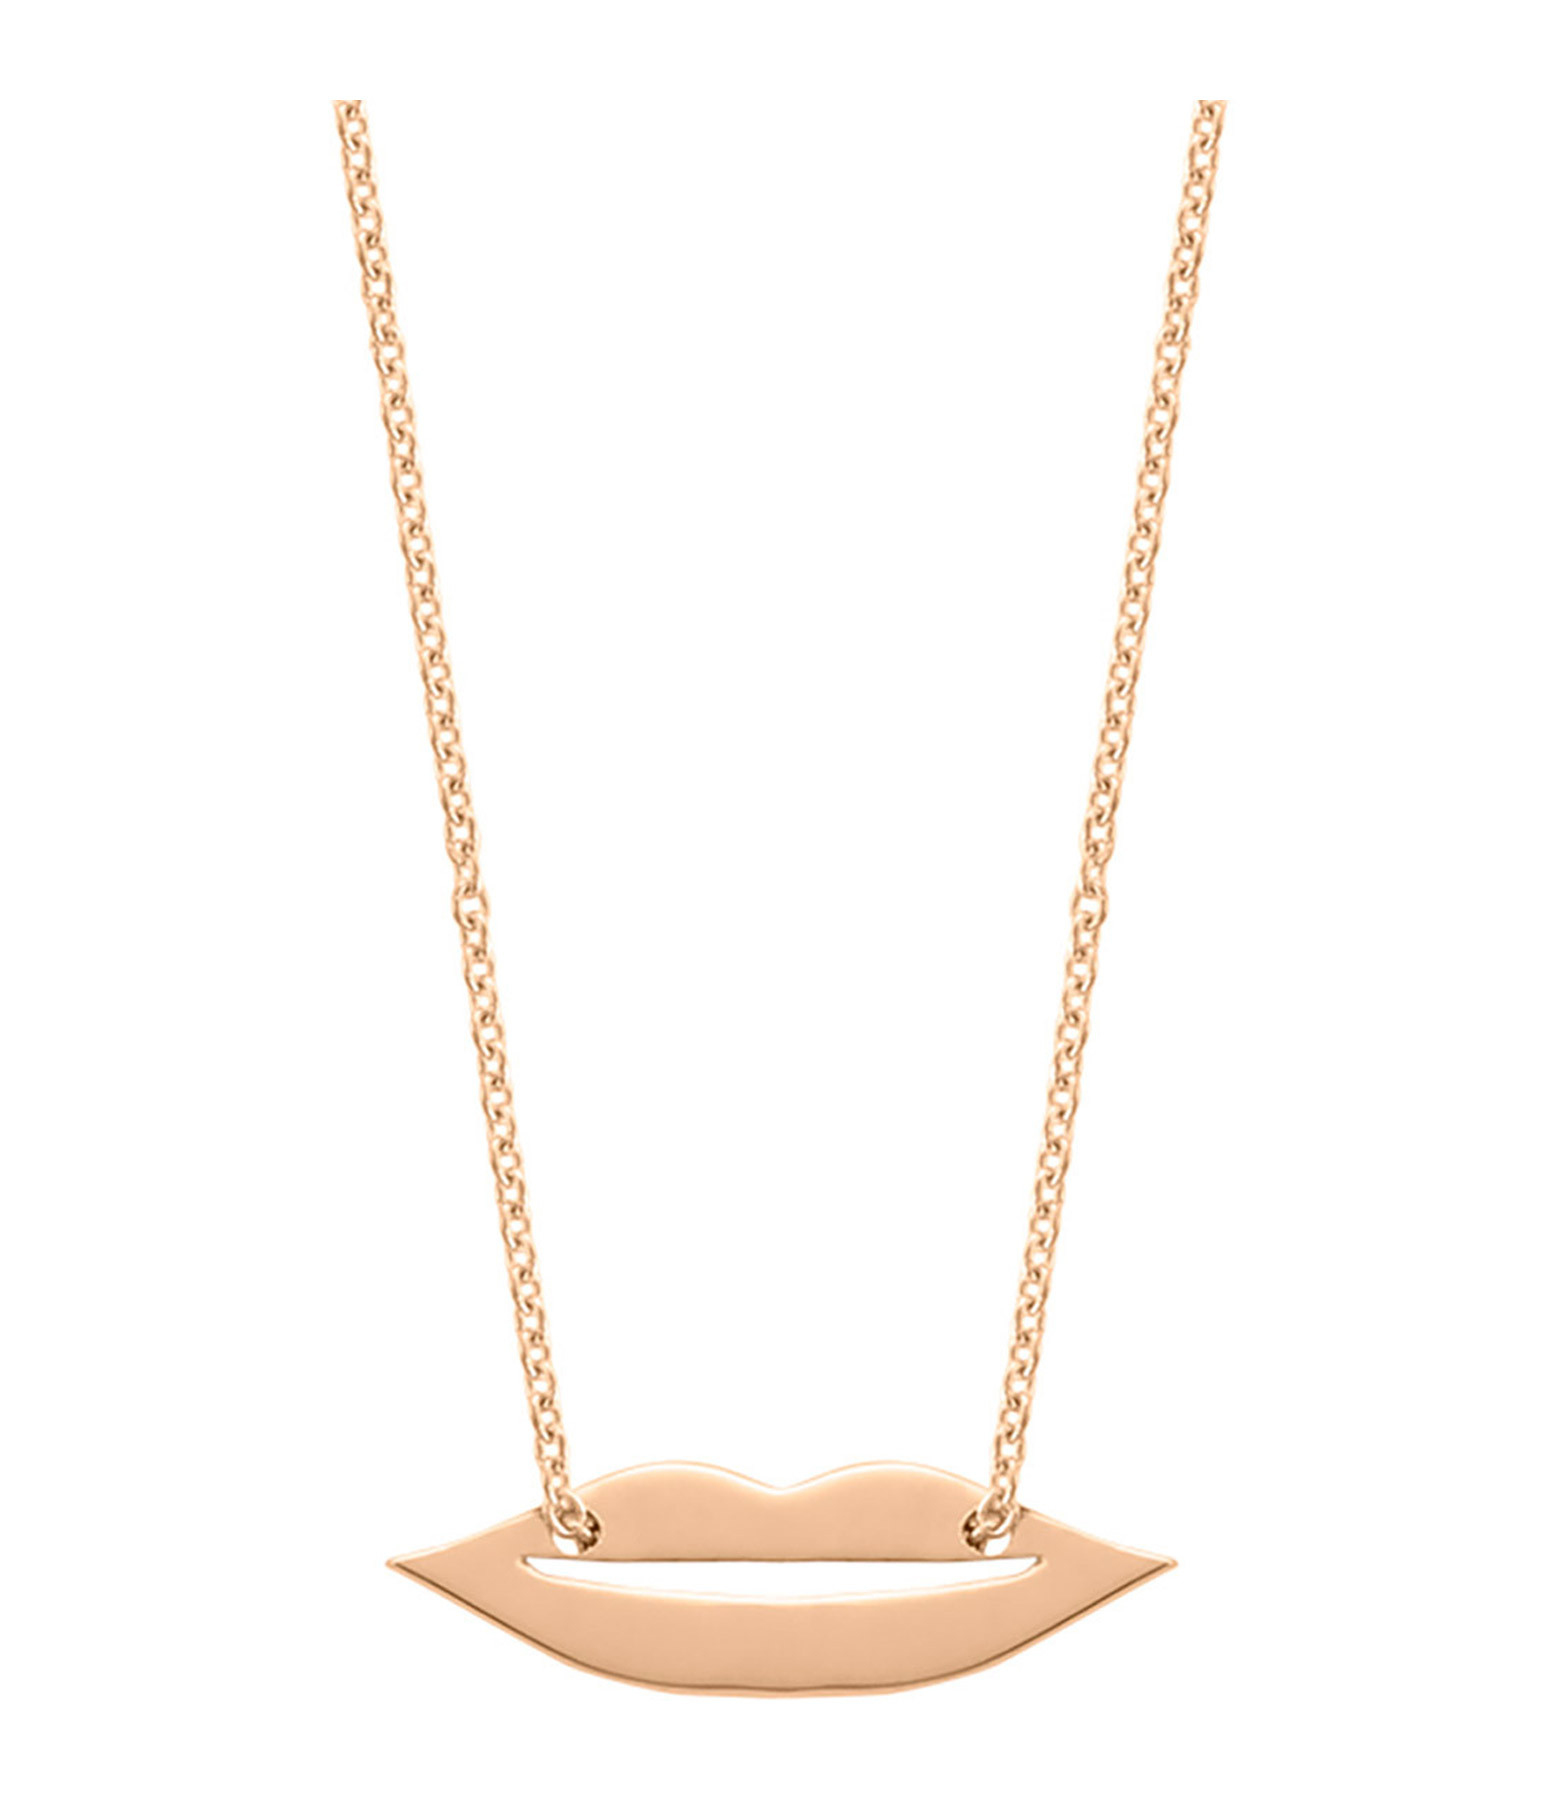 GINETTE NY - Collier Mini French Kiss Or Rose